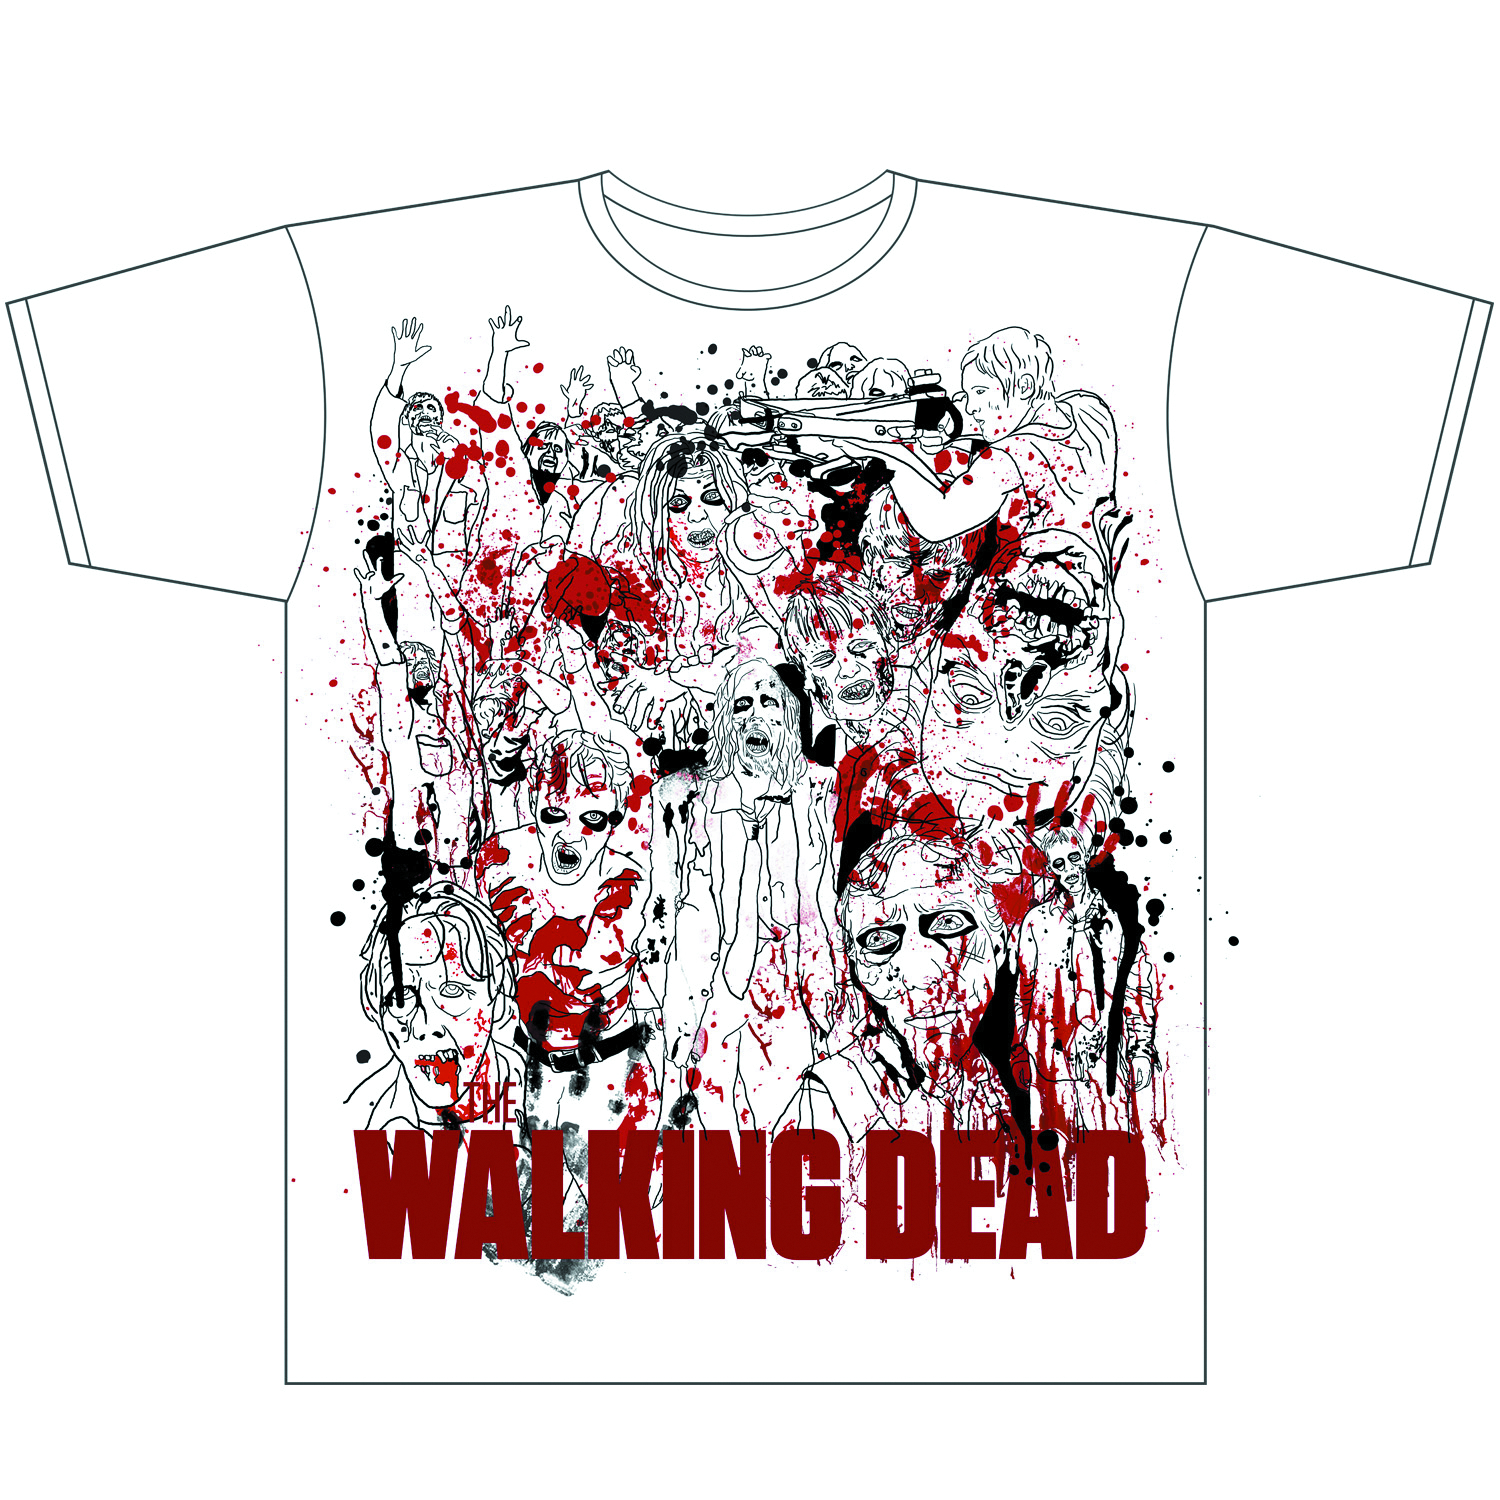 WALKING DEAD ZOMBIES FREE HAND PX WHT T/S LG